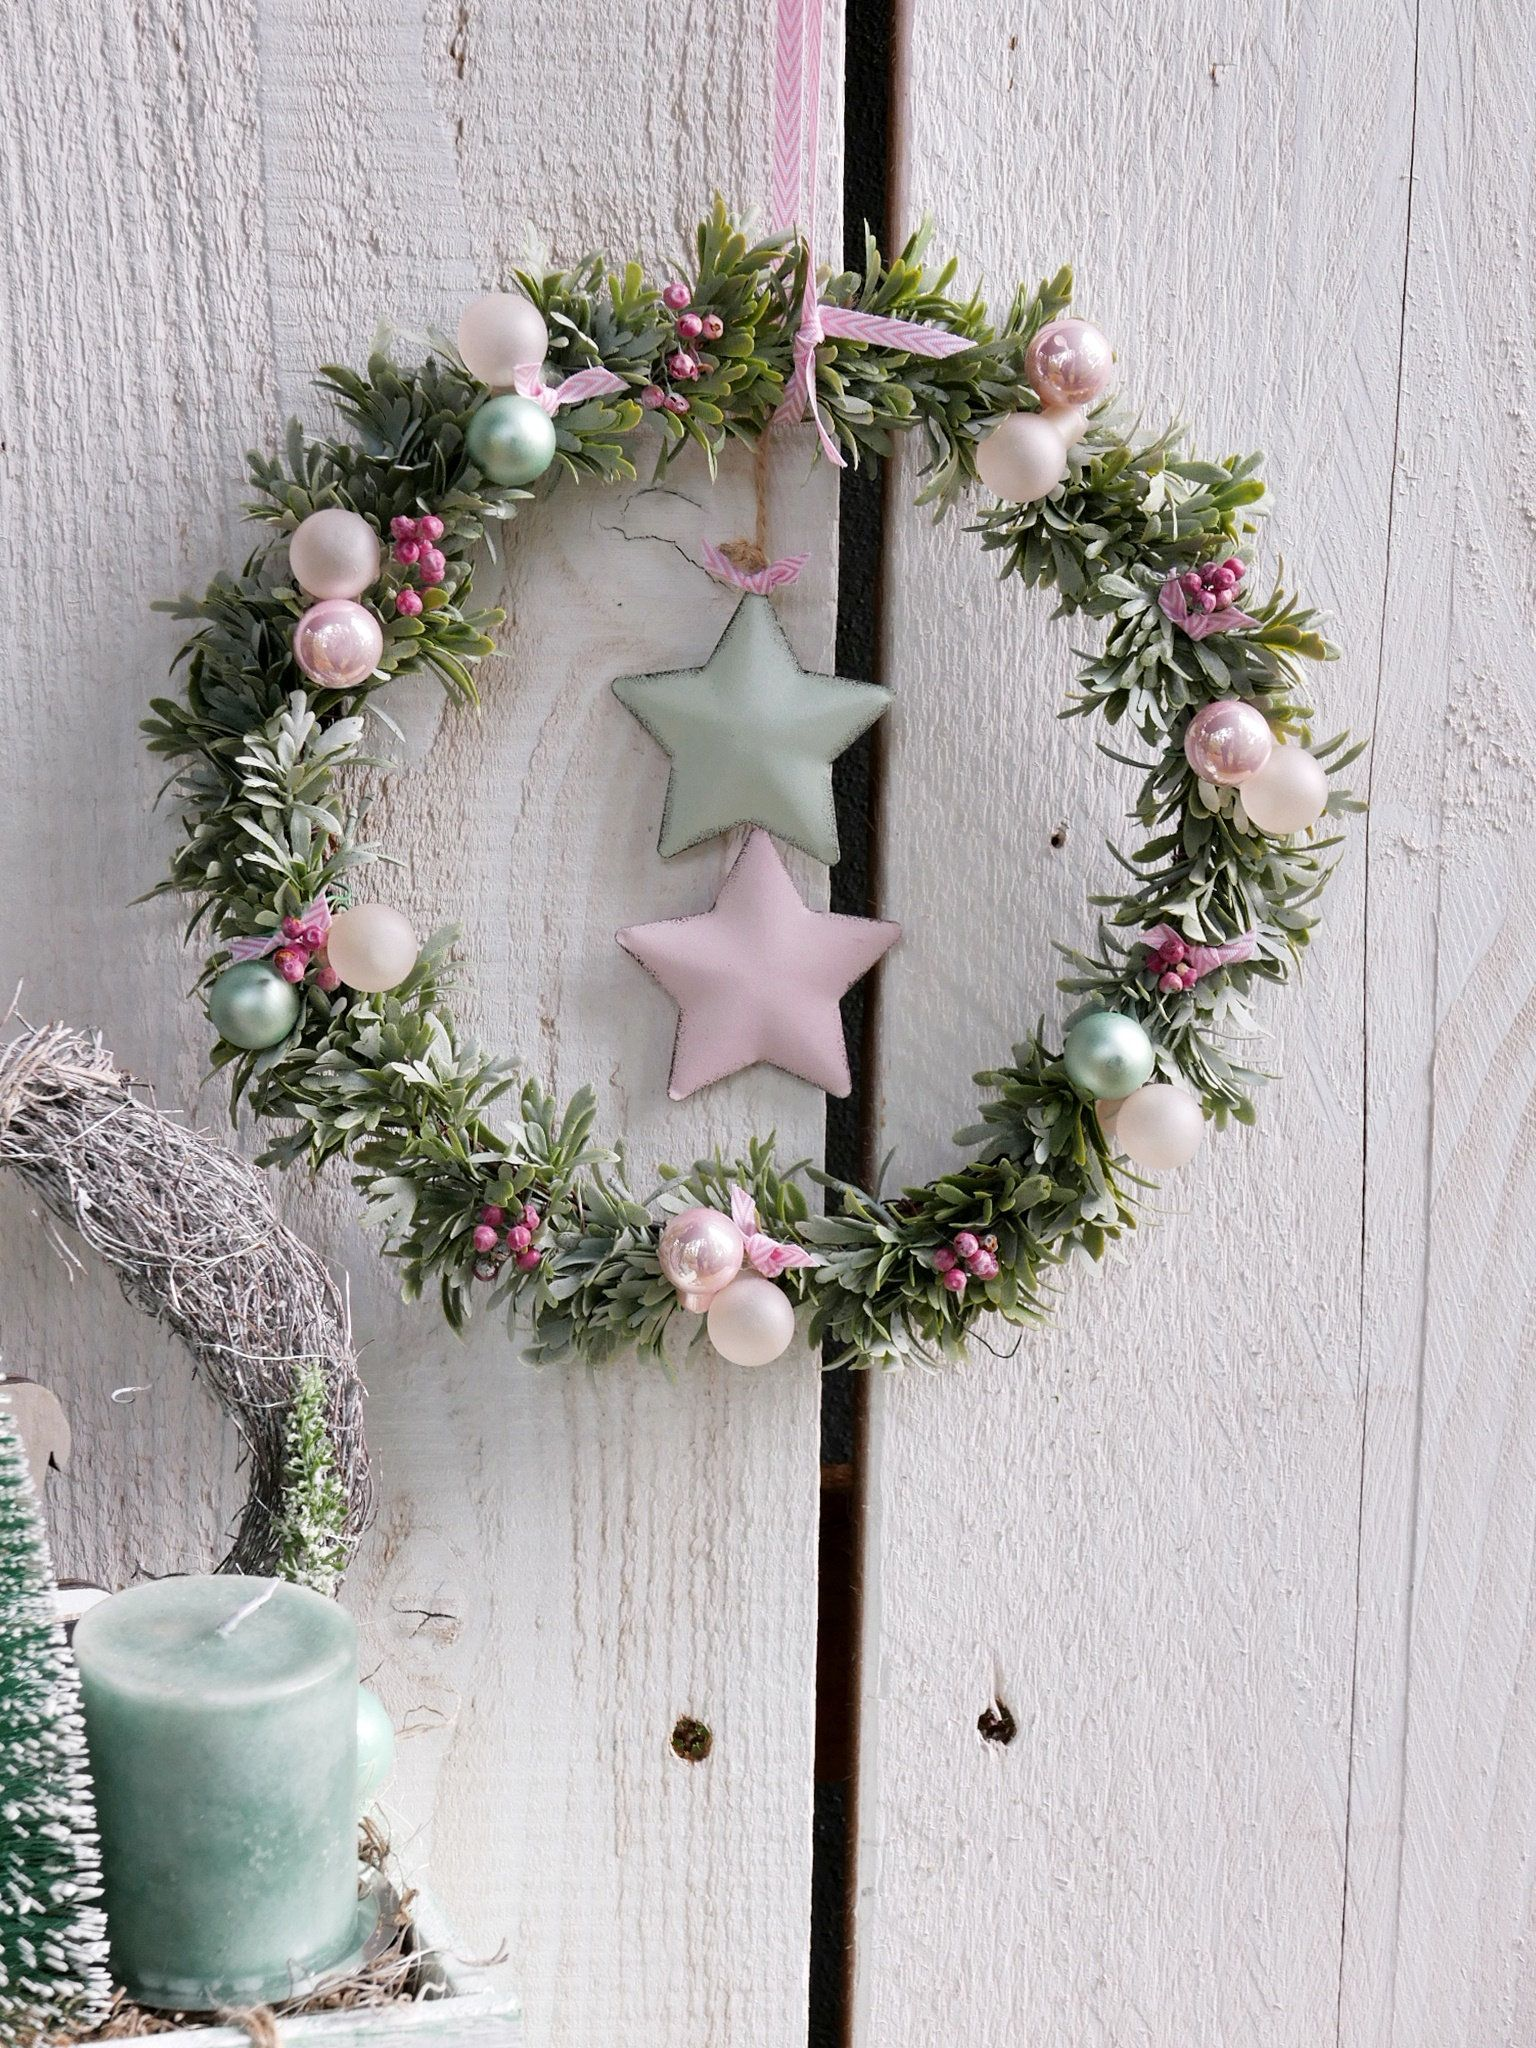 Wreath Christmas Floristik Pinterest